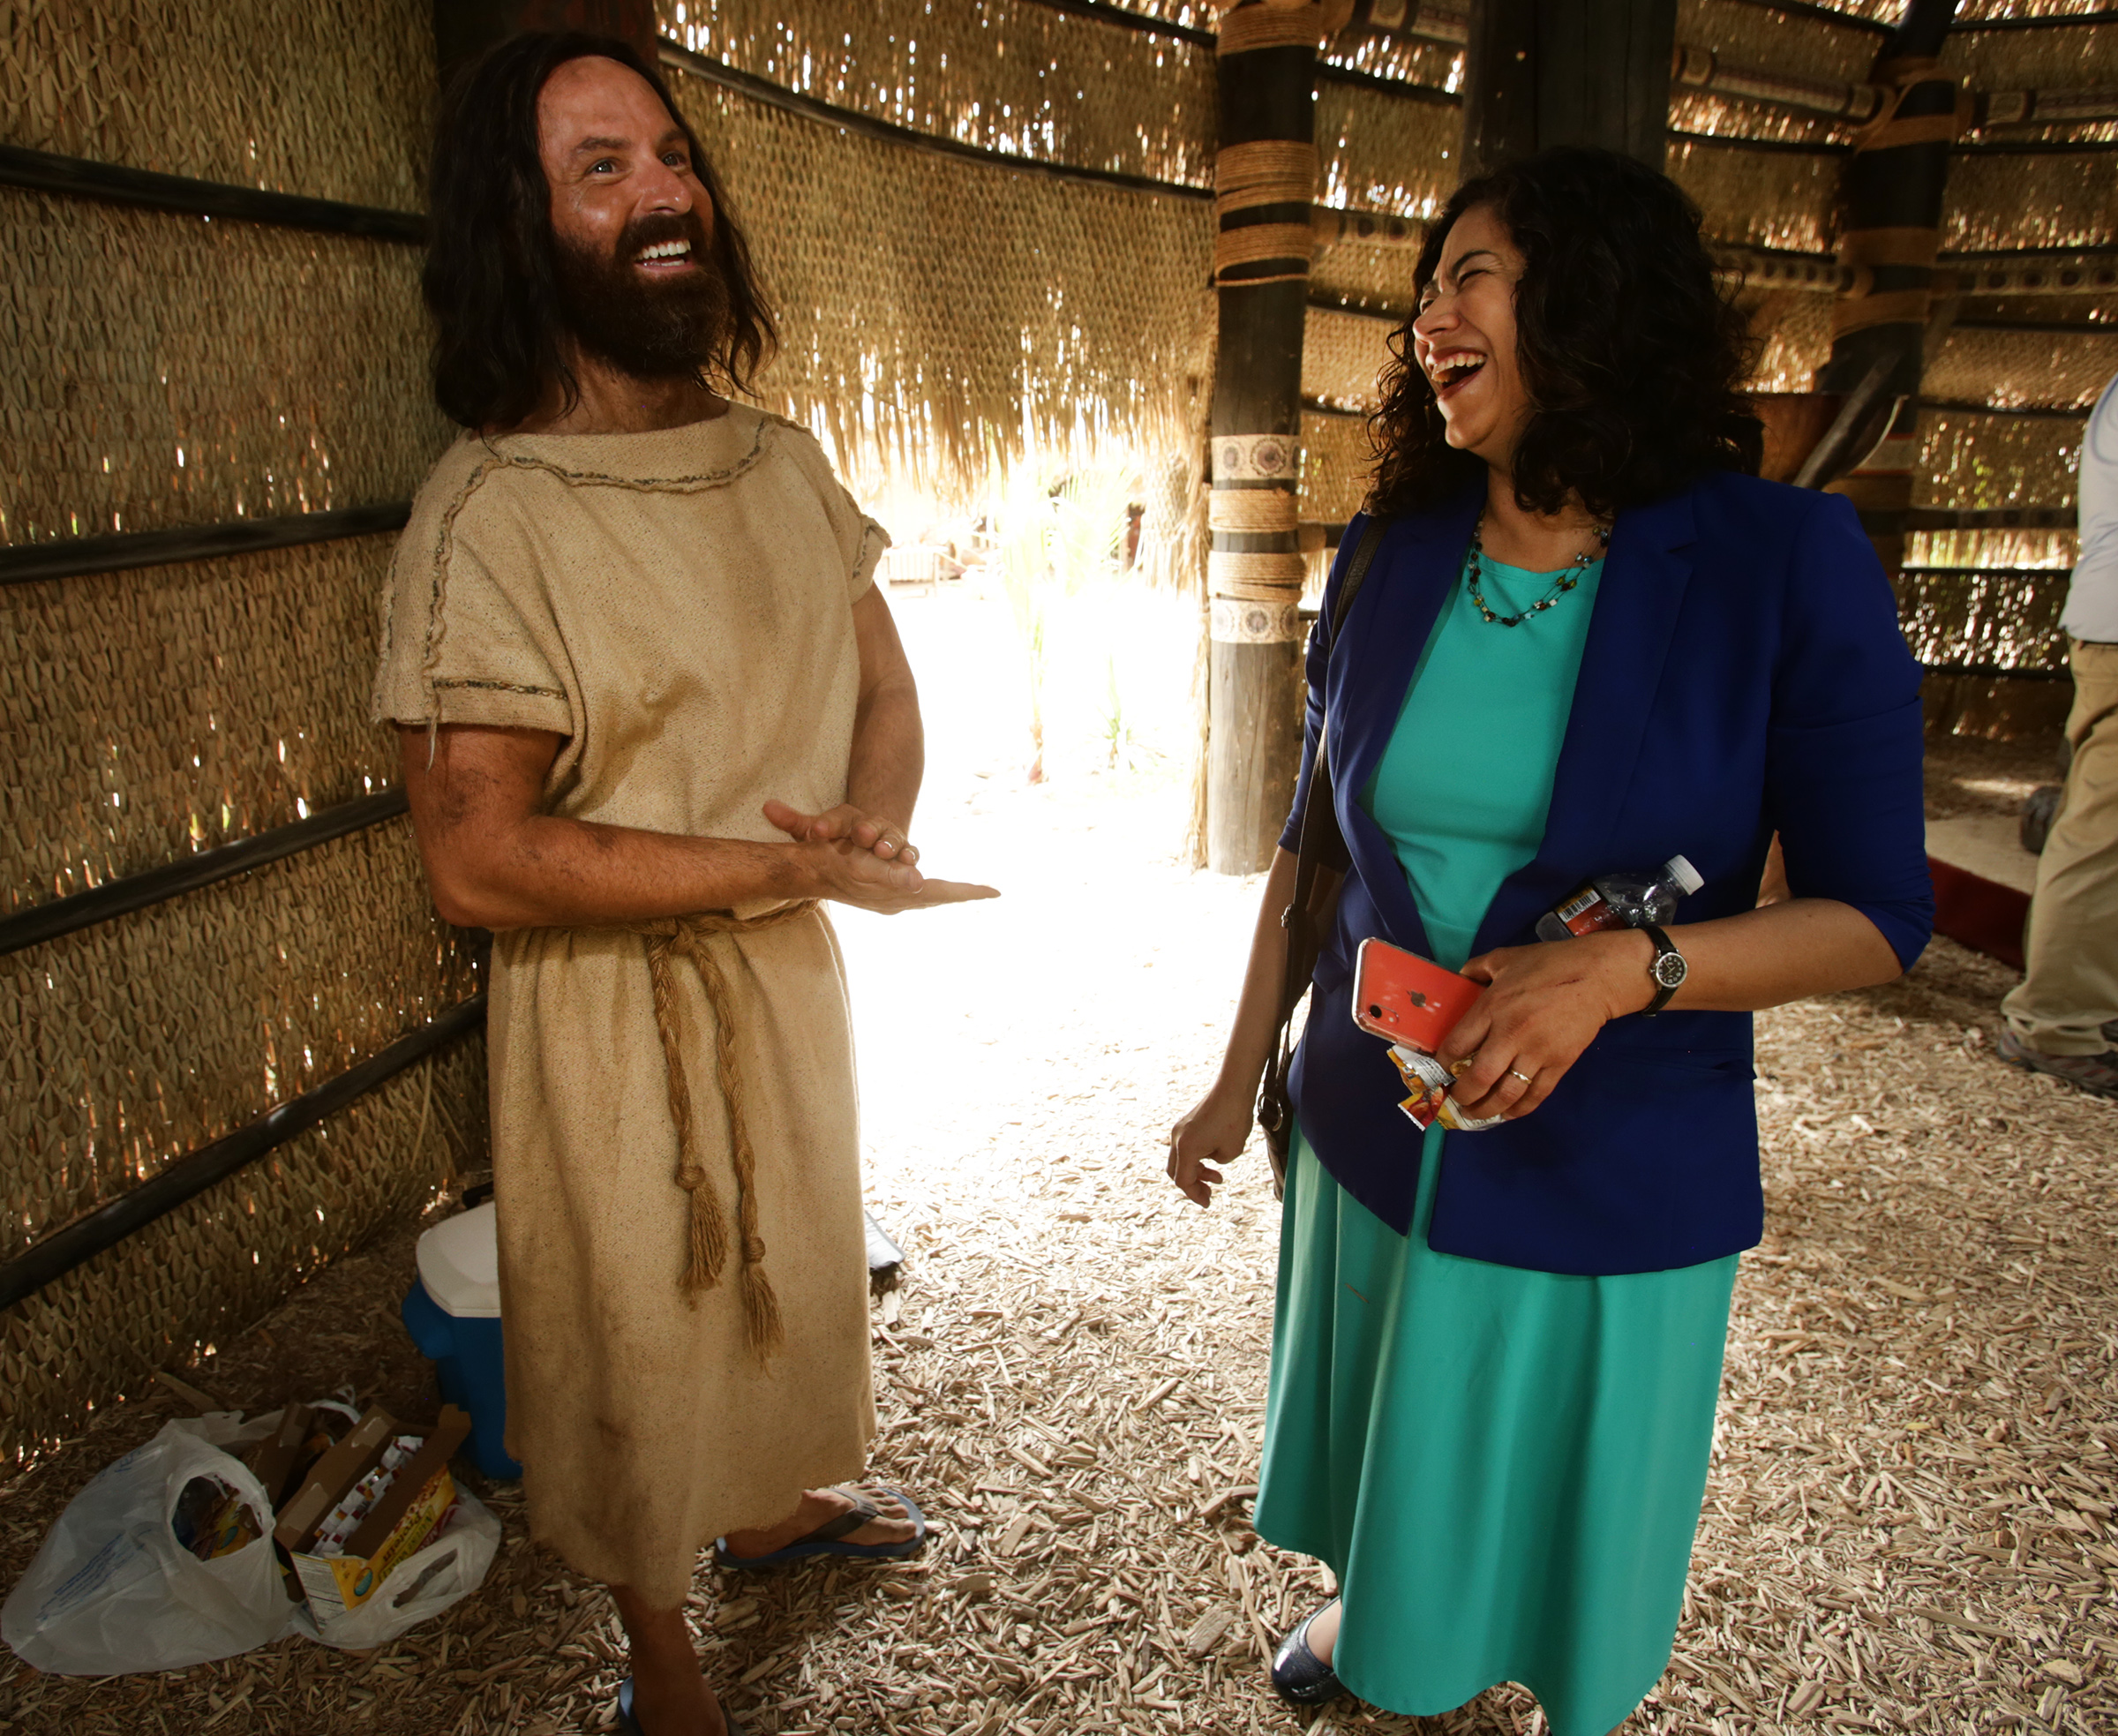 Ryan Wood, who plays the part of Abinadi, shares a laugh with Sister Reyna I. Aburto, second counselor in the Relief Society general presidency and member of the Book of Mormon Video Library steering committee, on a filming set at the Church's Motion Picture Studio on Tuesday, Sept. 3, 2019.